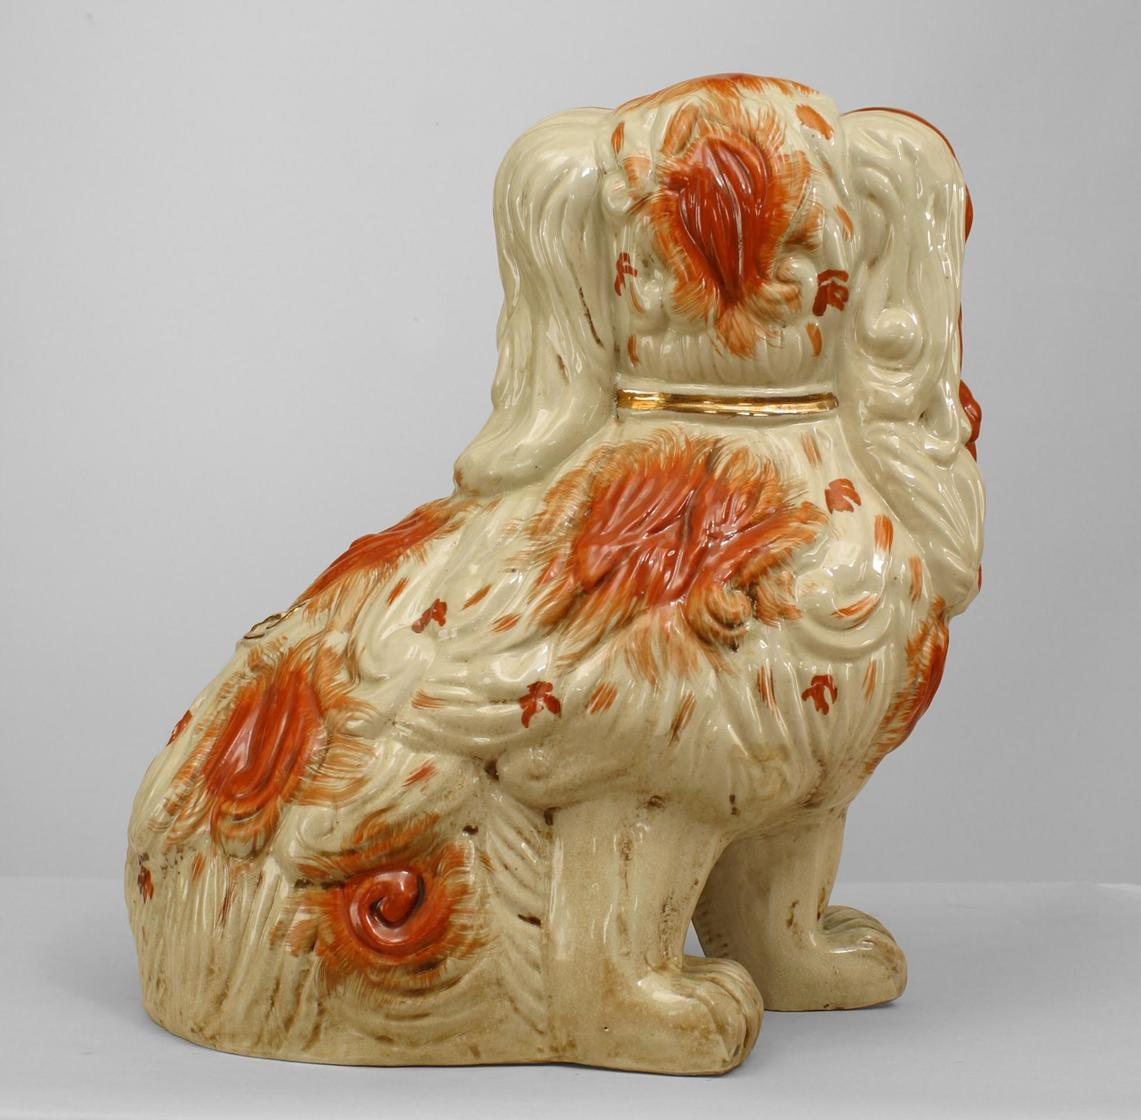 Pair of Early 20th Century English Staffordshire Spaniel Sculptures 4